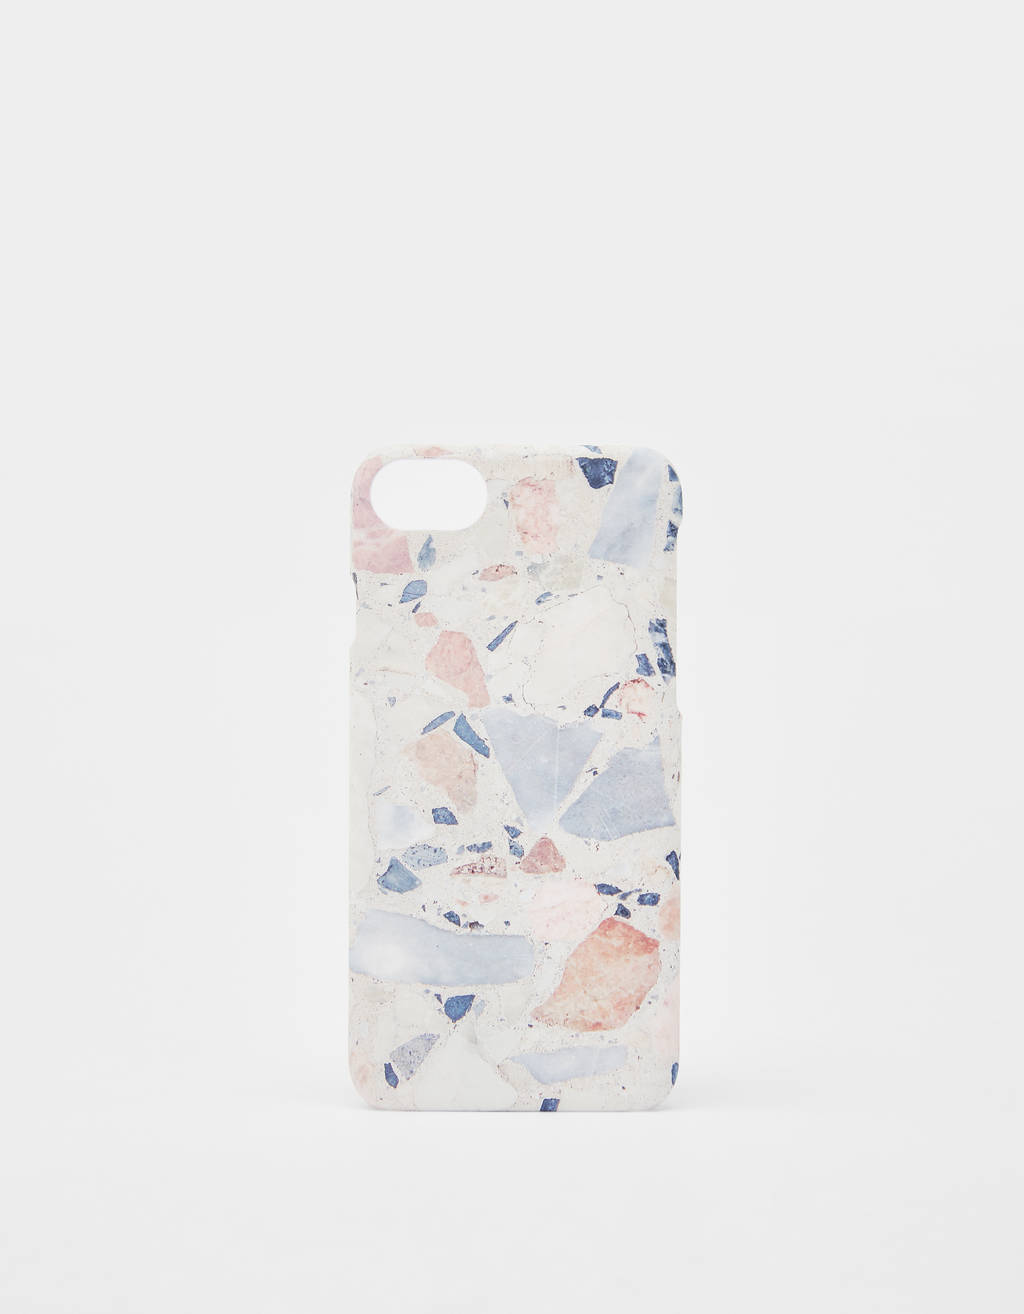 Marble iPhone 6 / 6S / 7 / 8 case